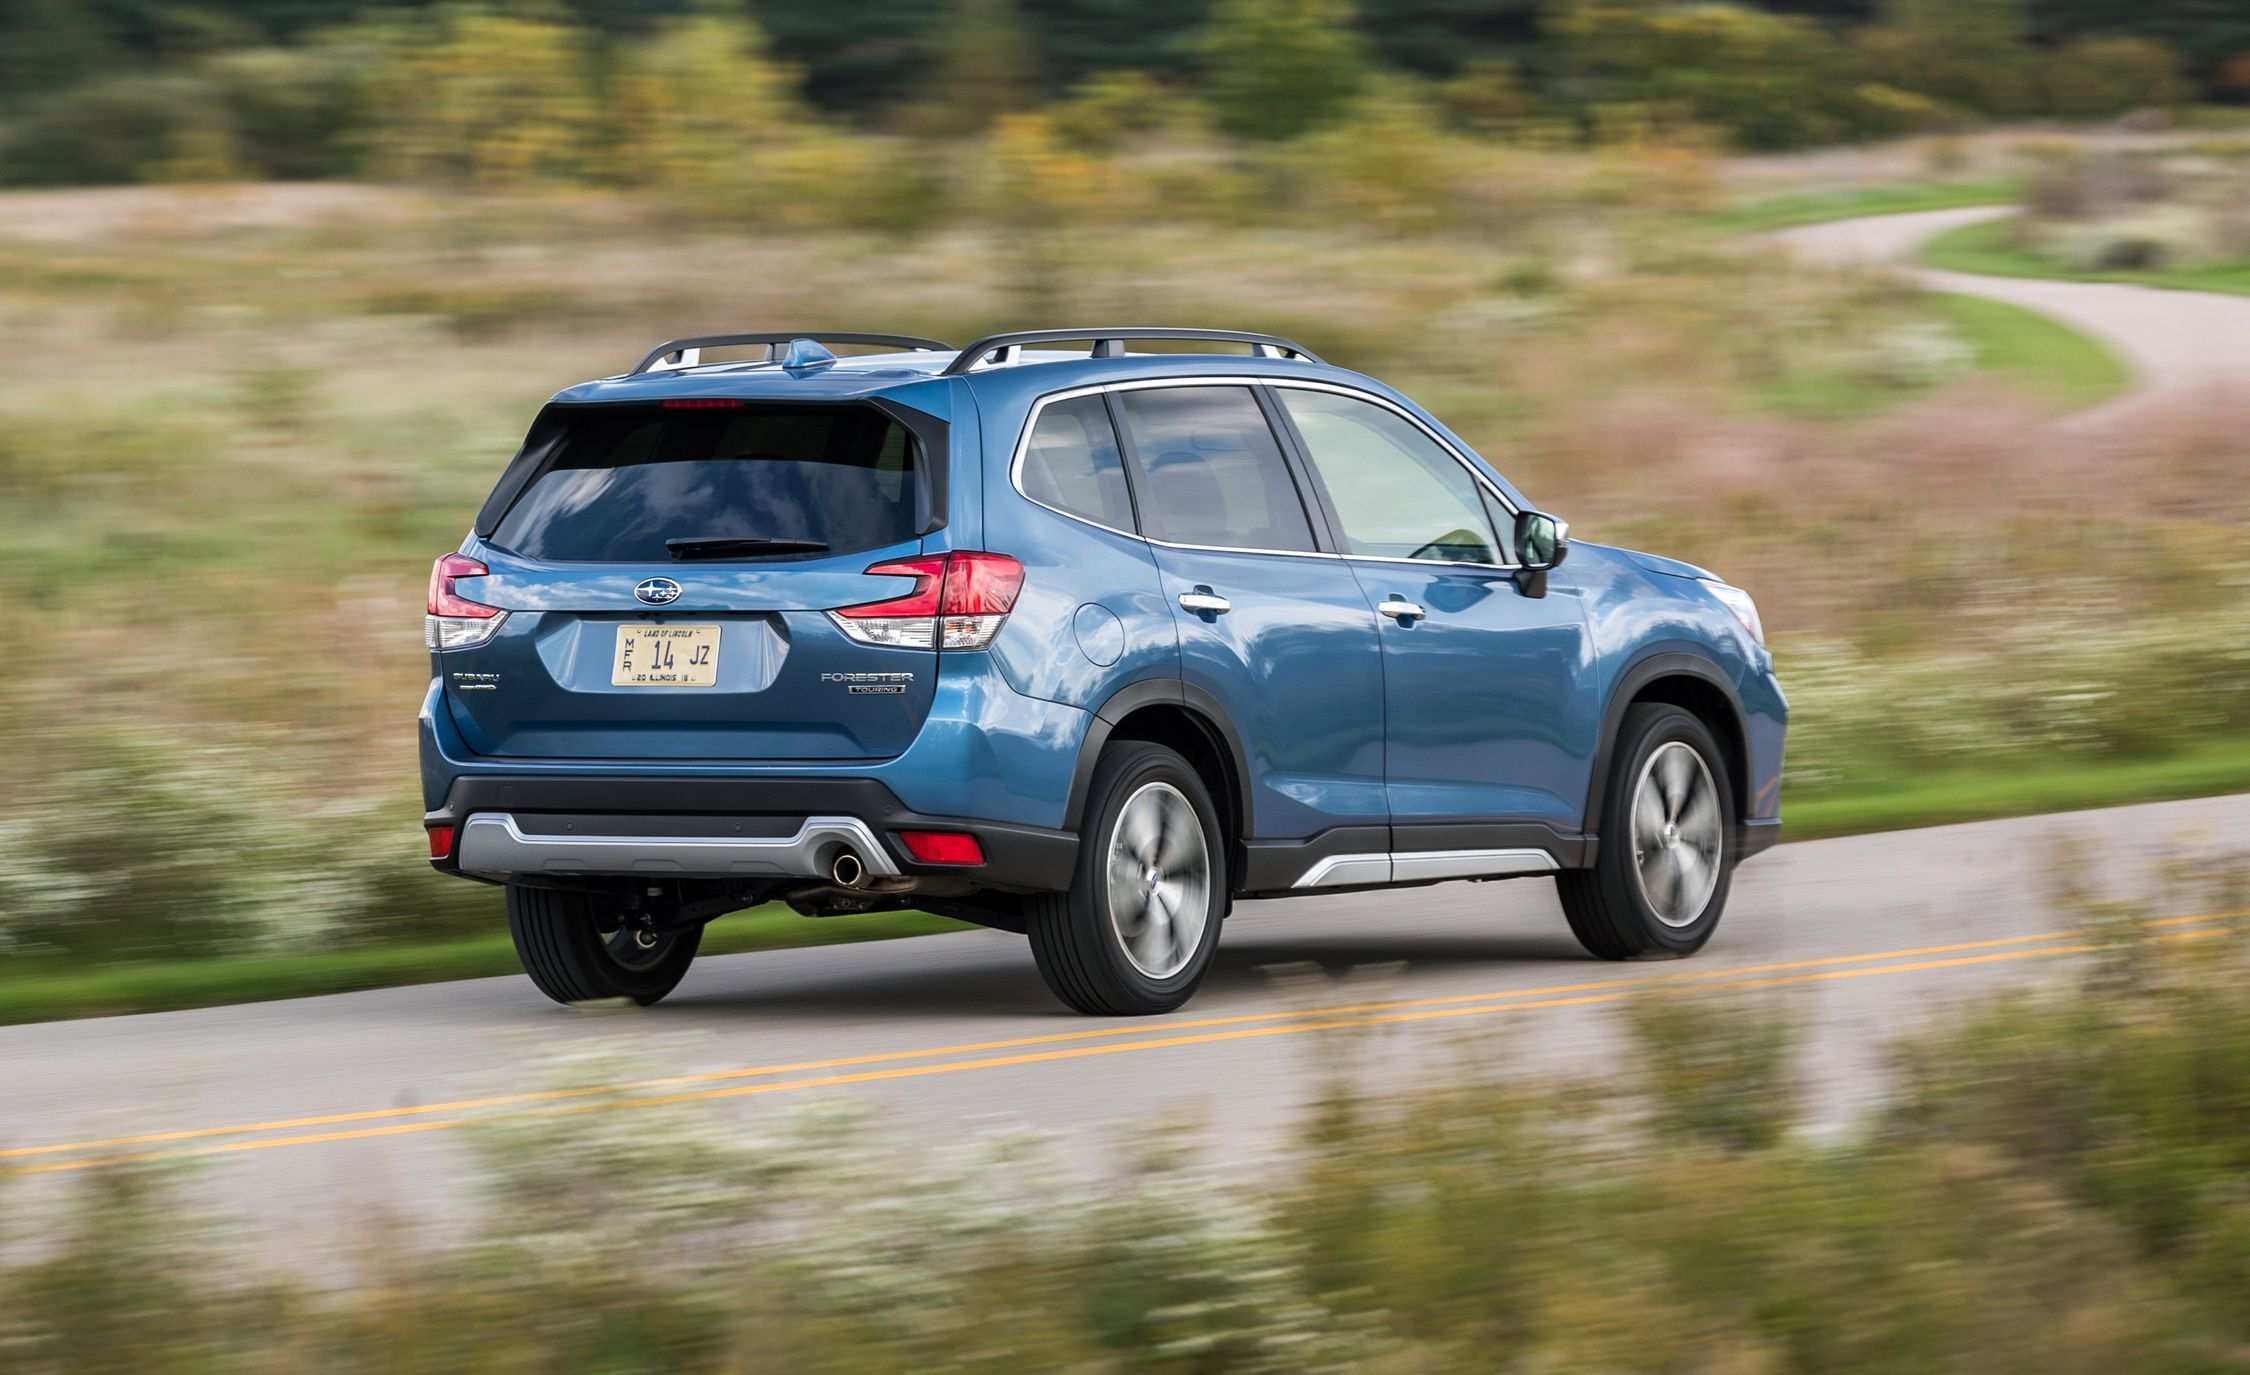 92 All New 2019 Subaru Forester Manual New Review with 2019 Subaru Forester Manual